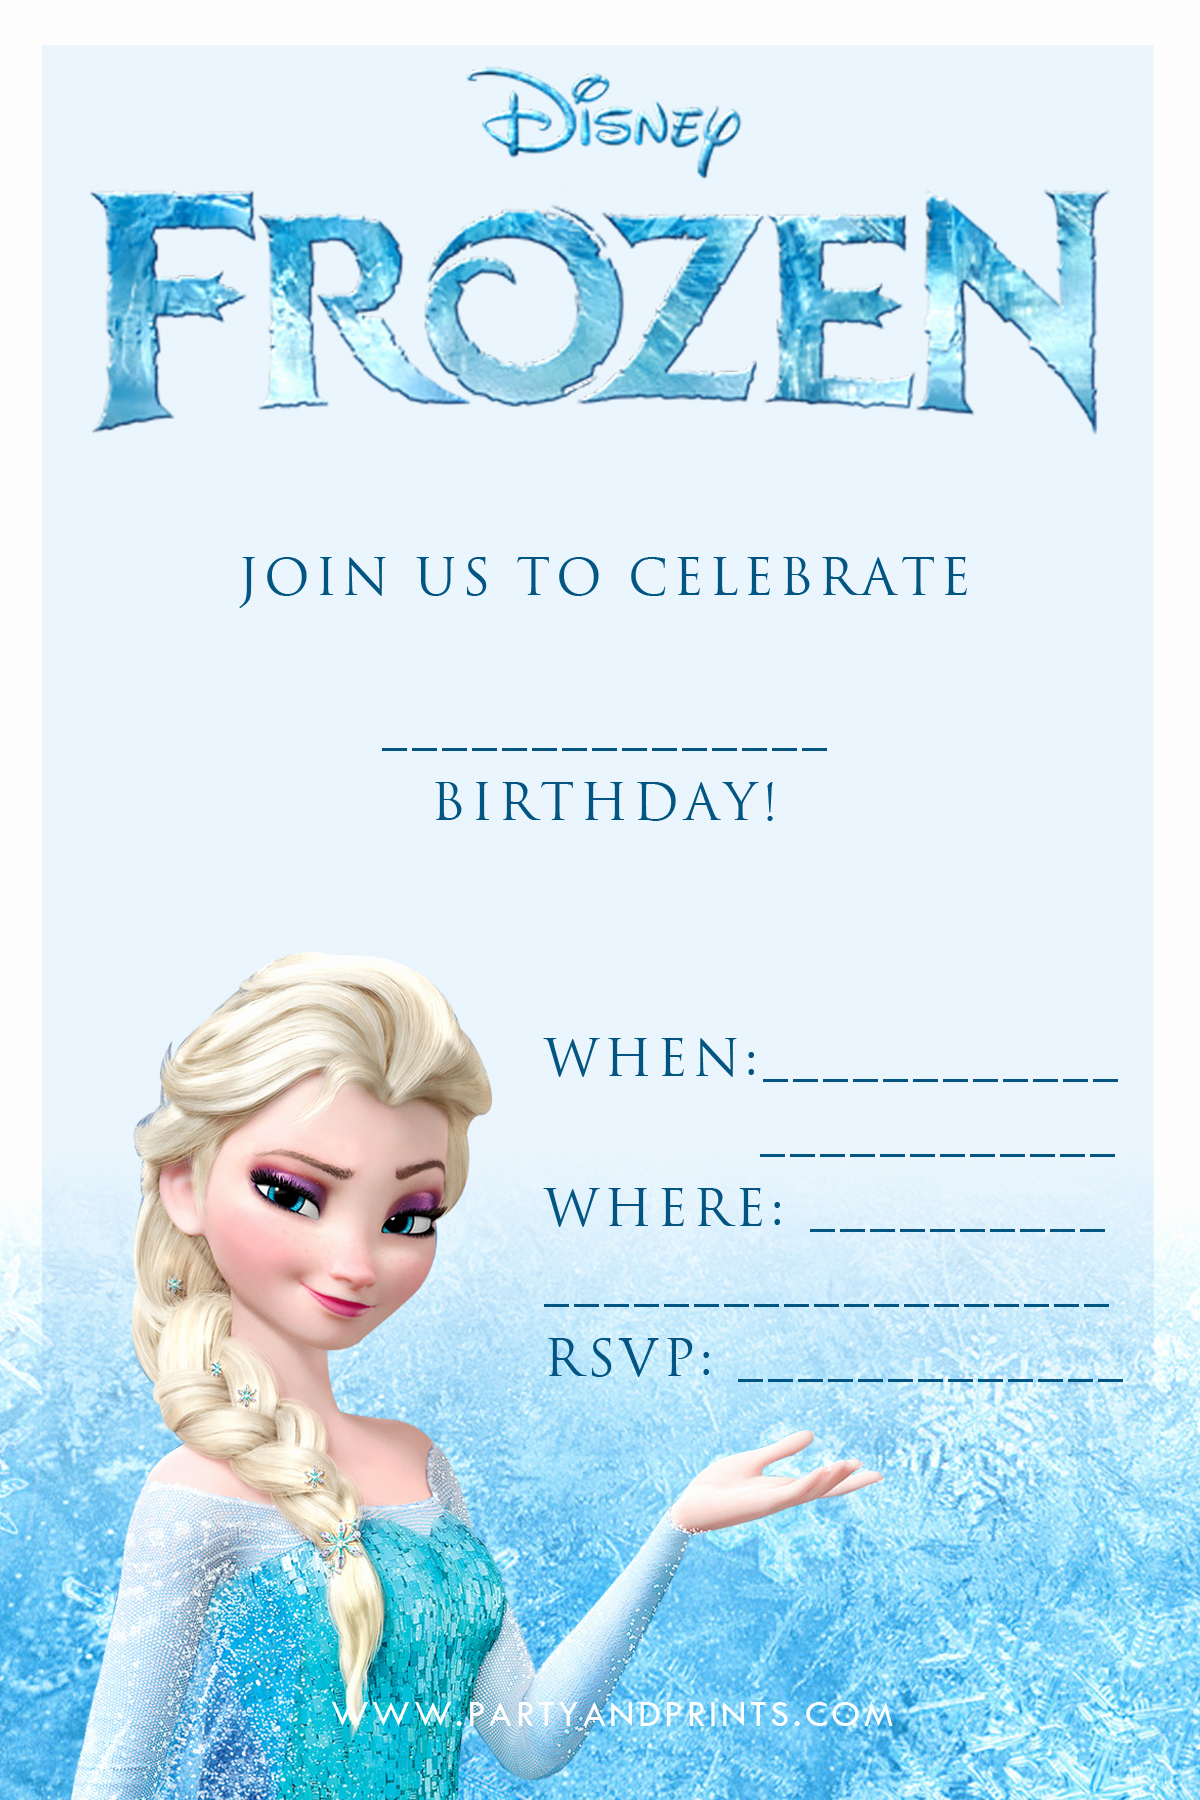 Free Printable Frozen Invitation Templates Elegant 20 Frozen Birthday Party Ideas